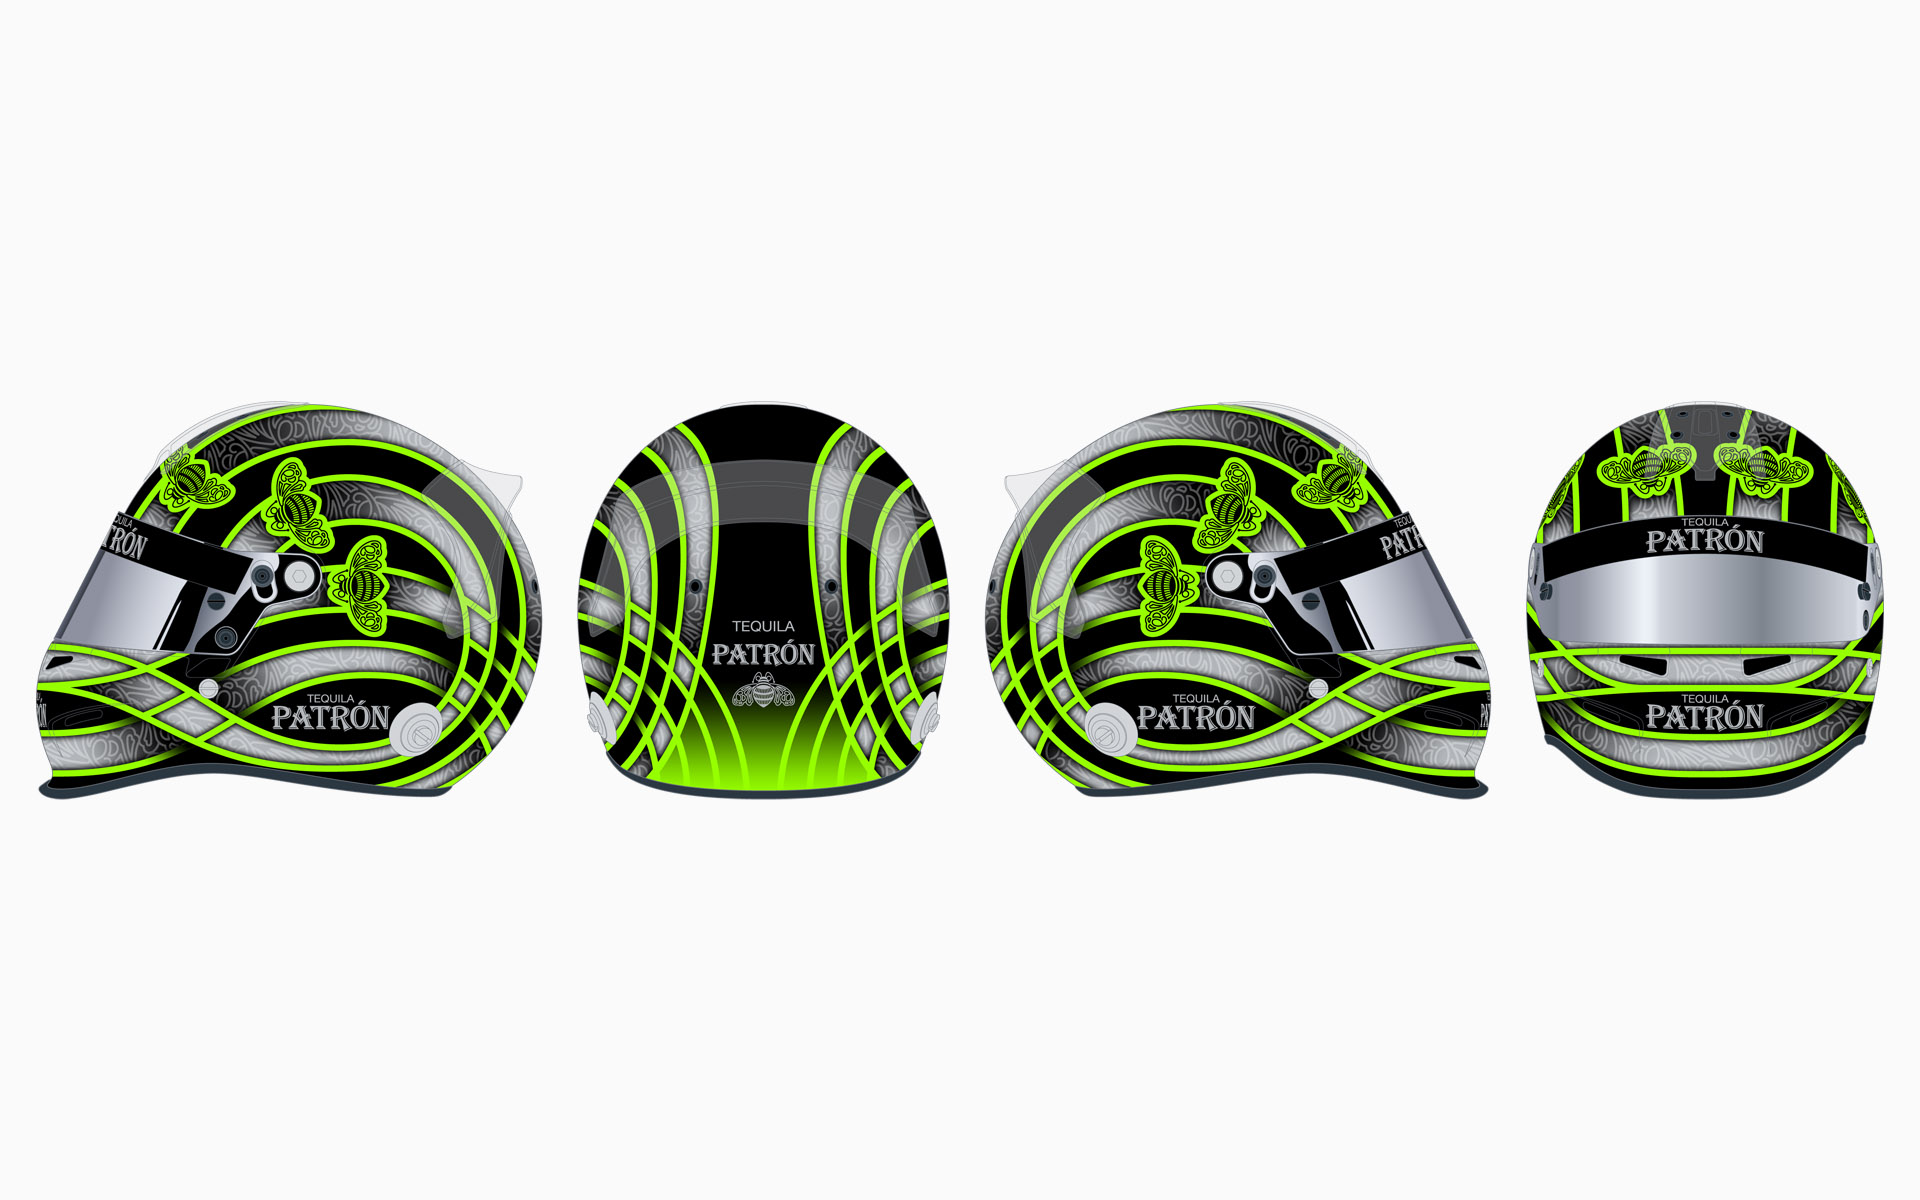 2011 Extreme Speed Motorsports Pátron Helmet Livery Elevations